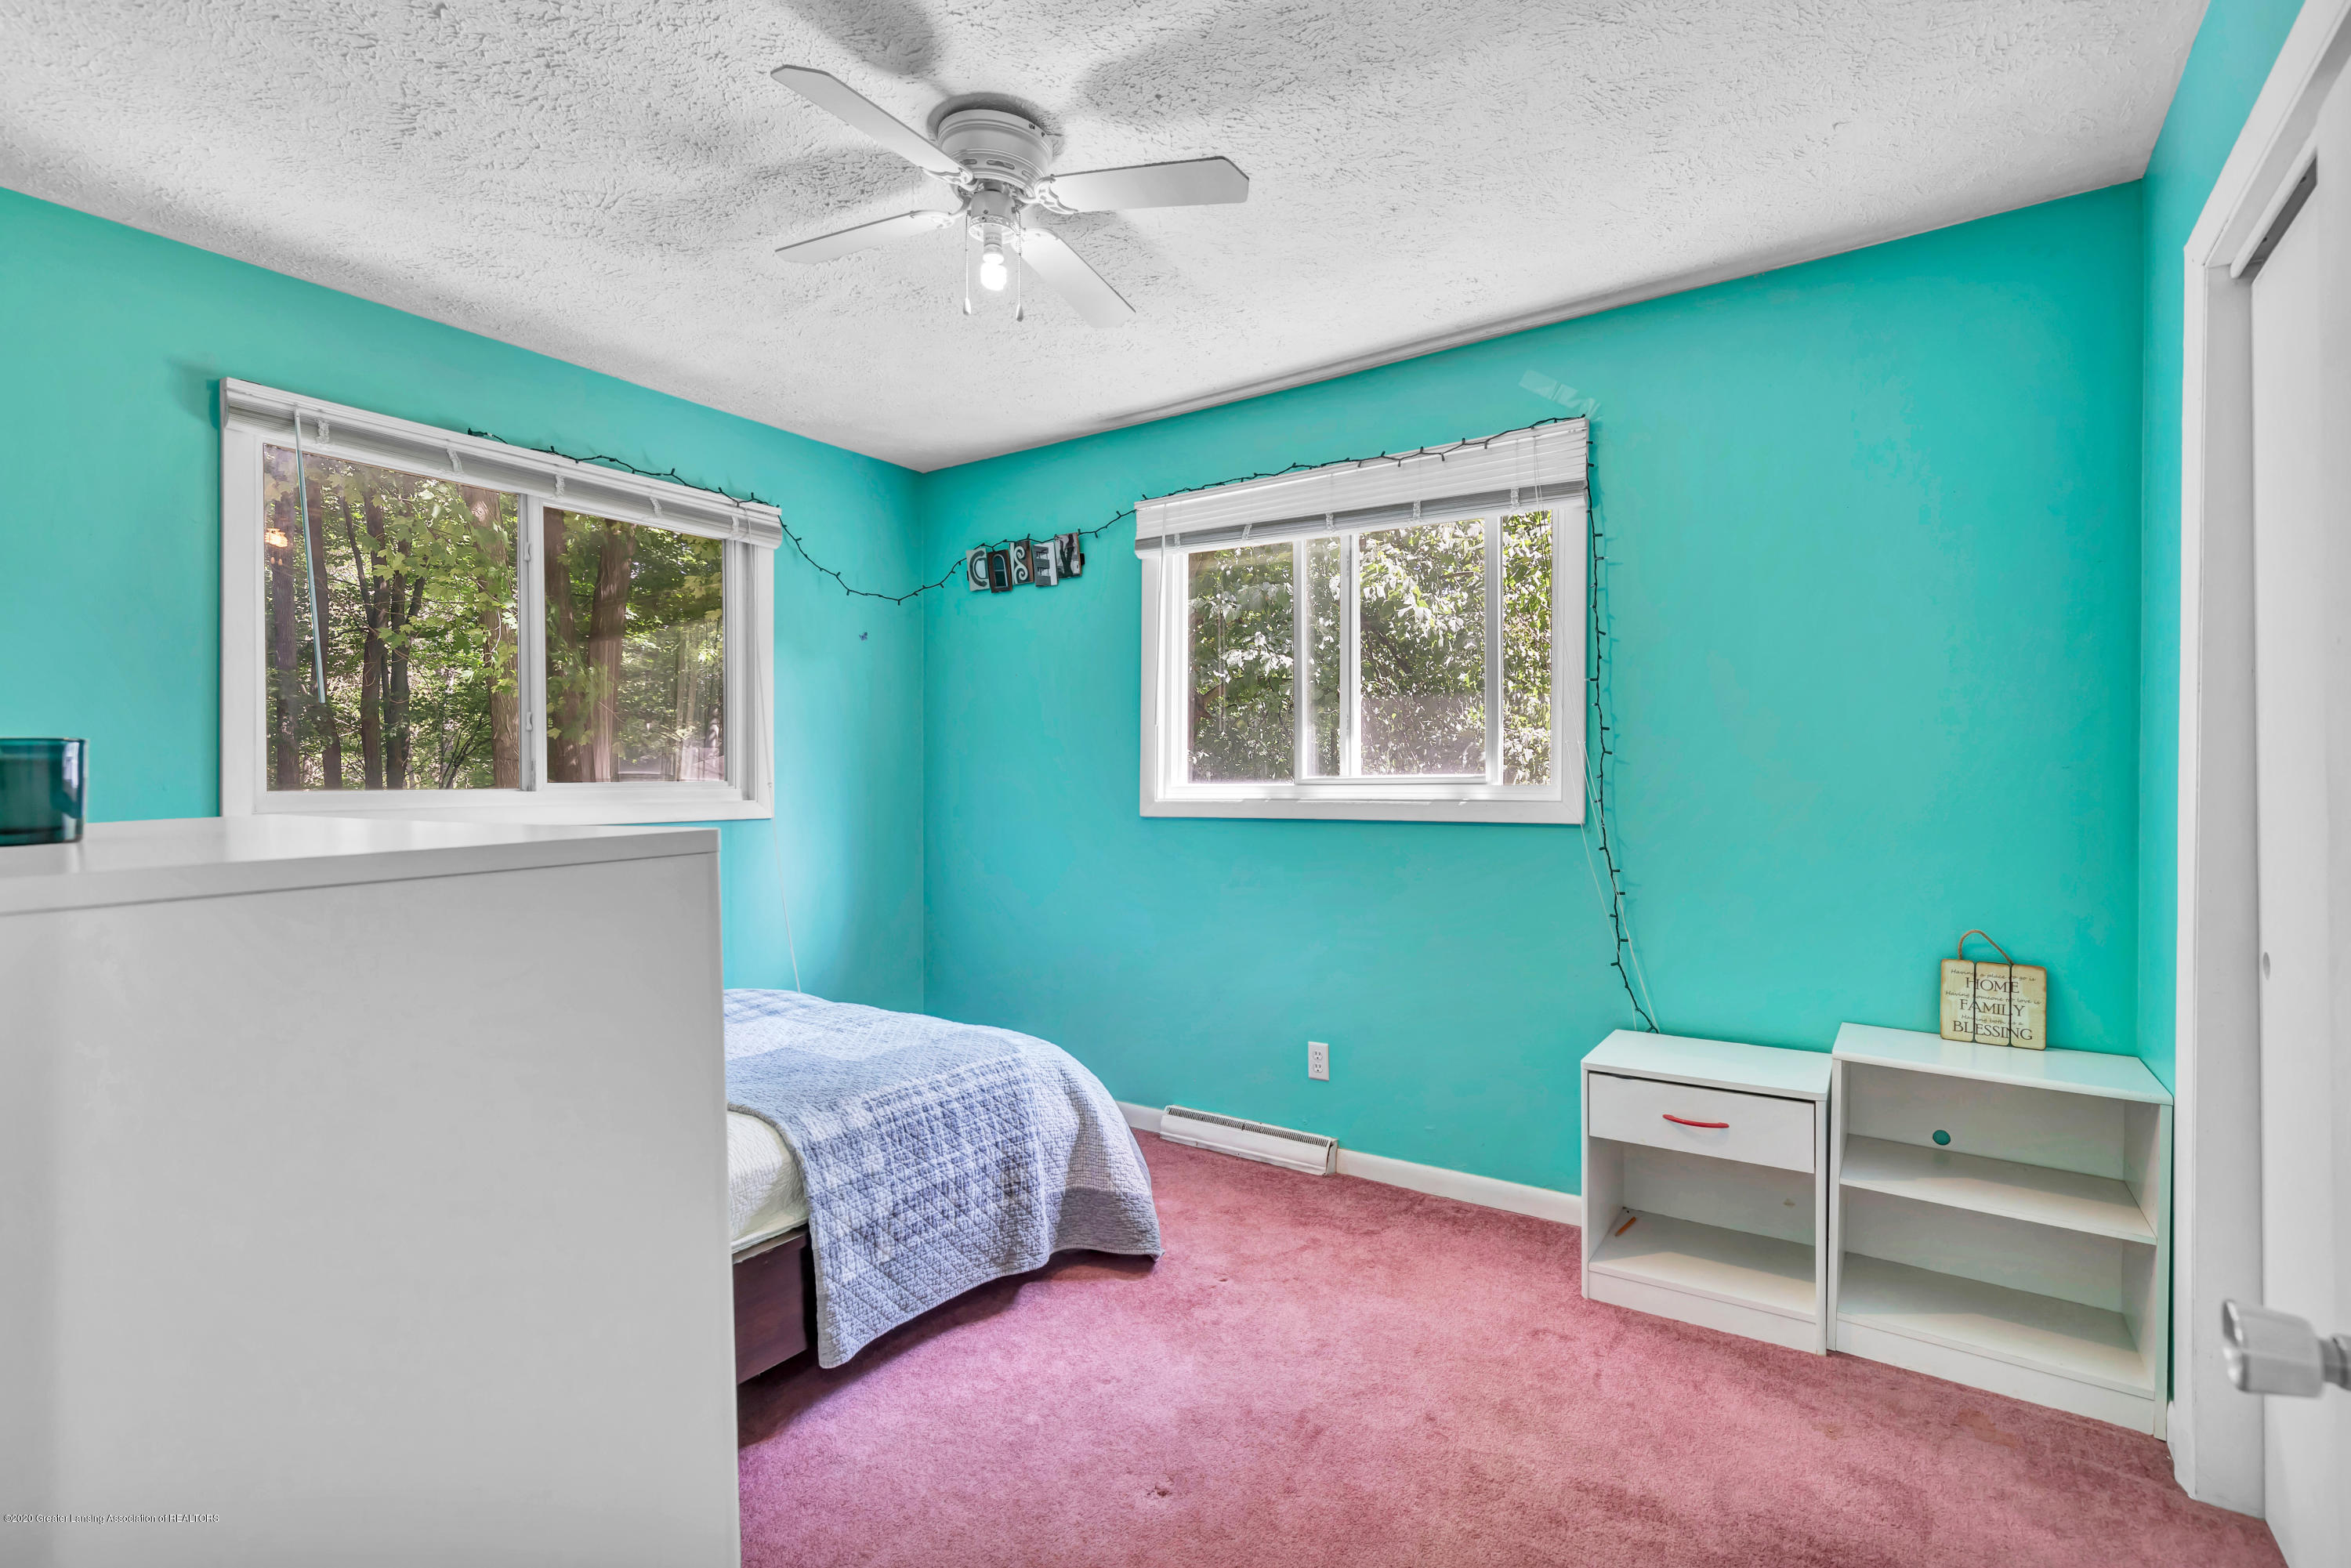 6641 Kingdon Ave - Bedroom - 20